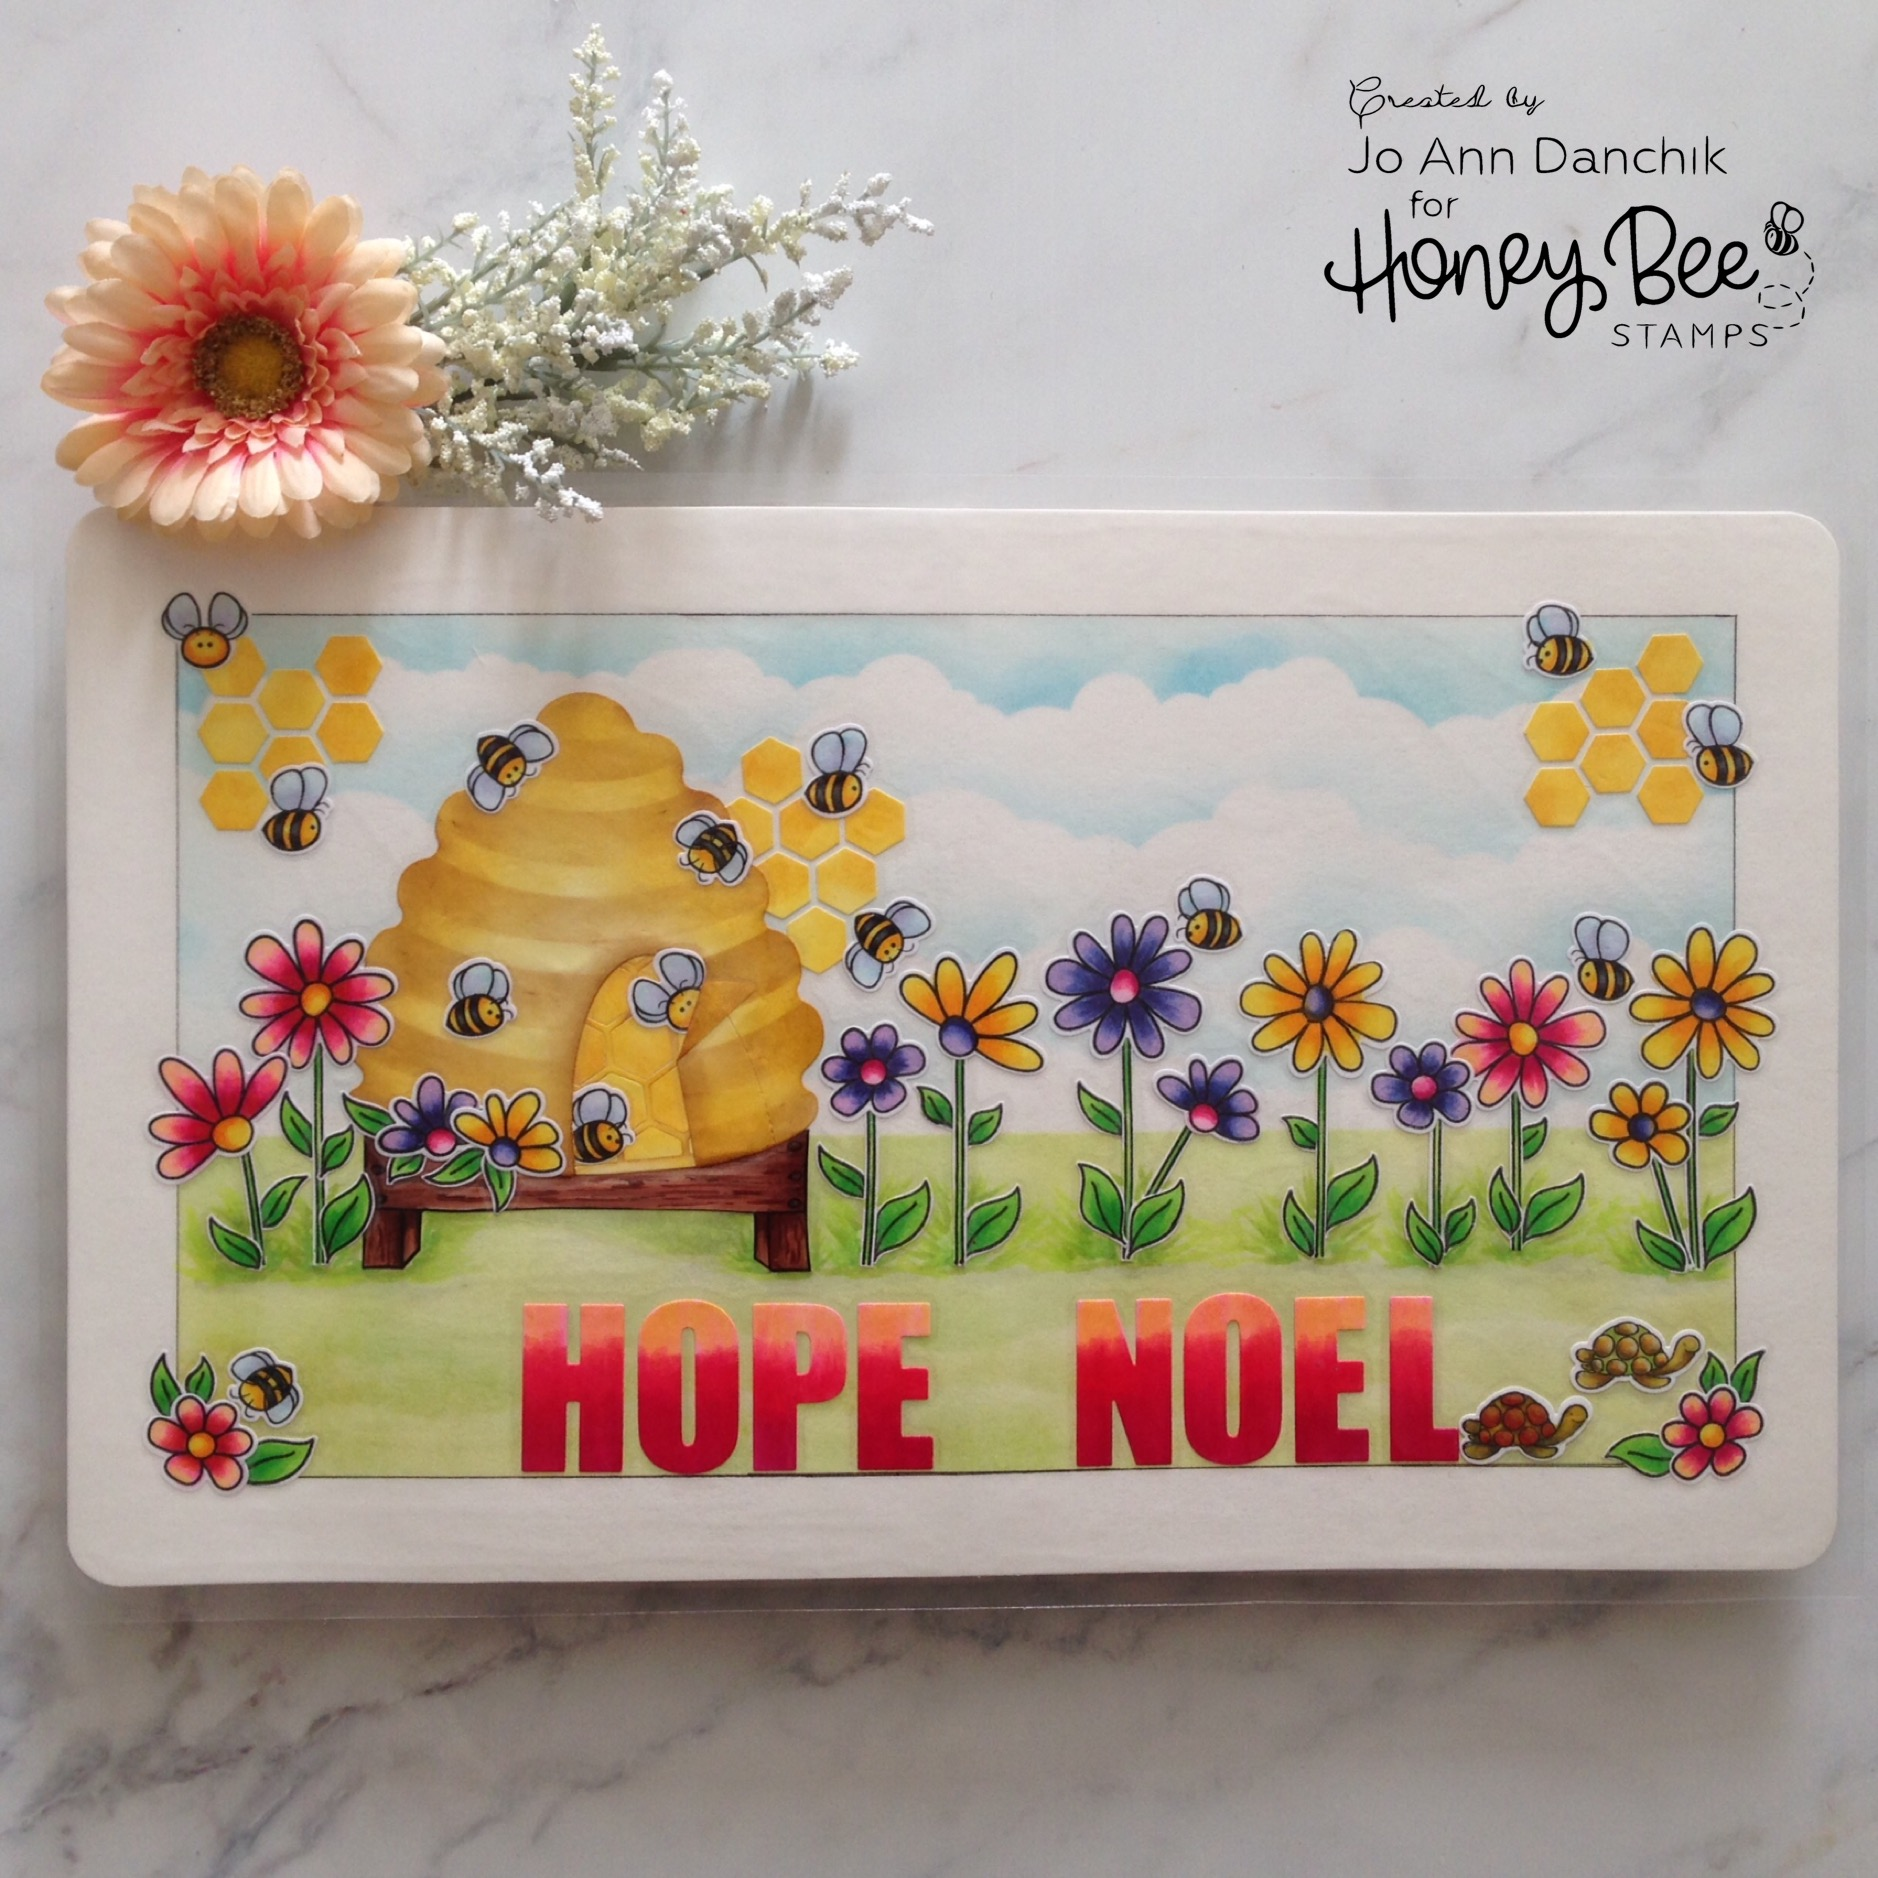 Creative Sundays With Jo Ann: Whimsical Garden Placemat